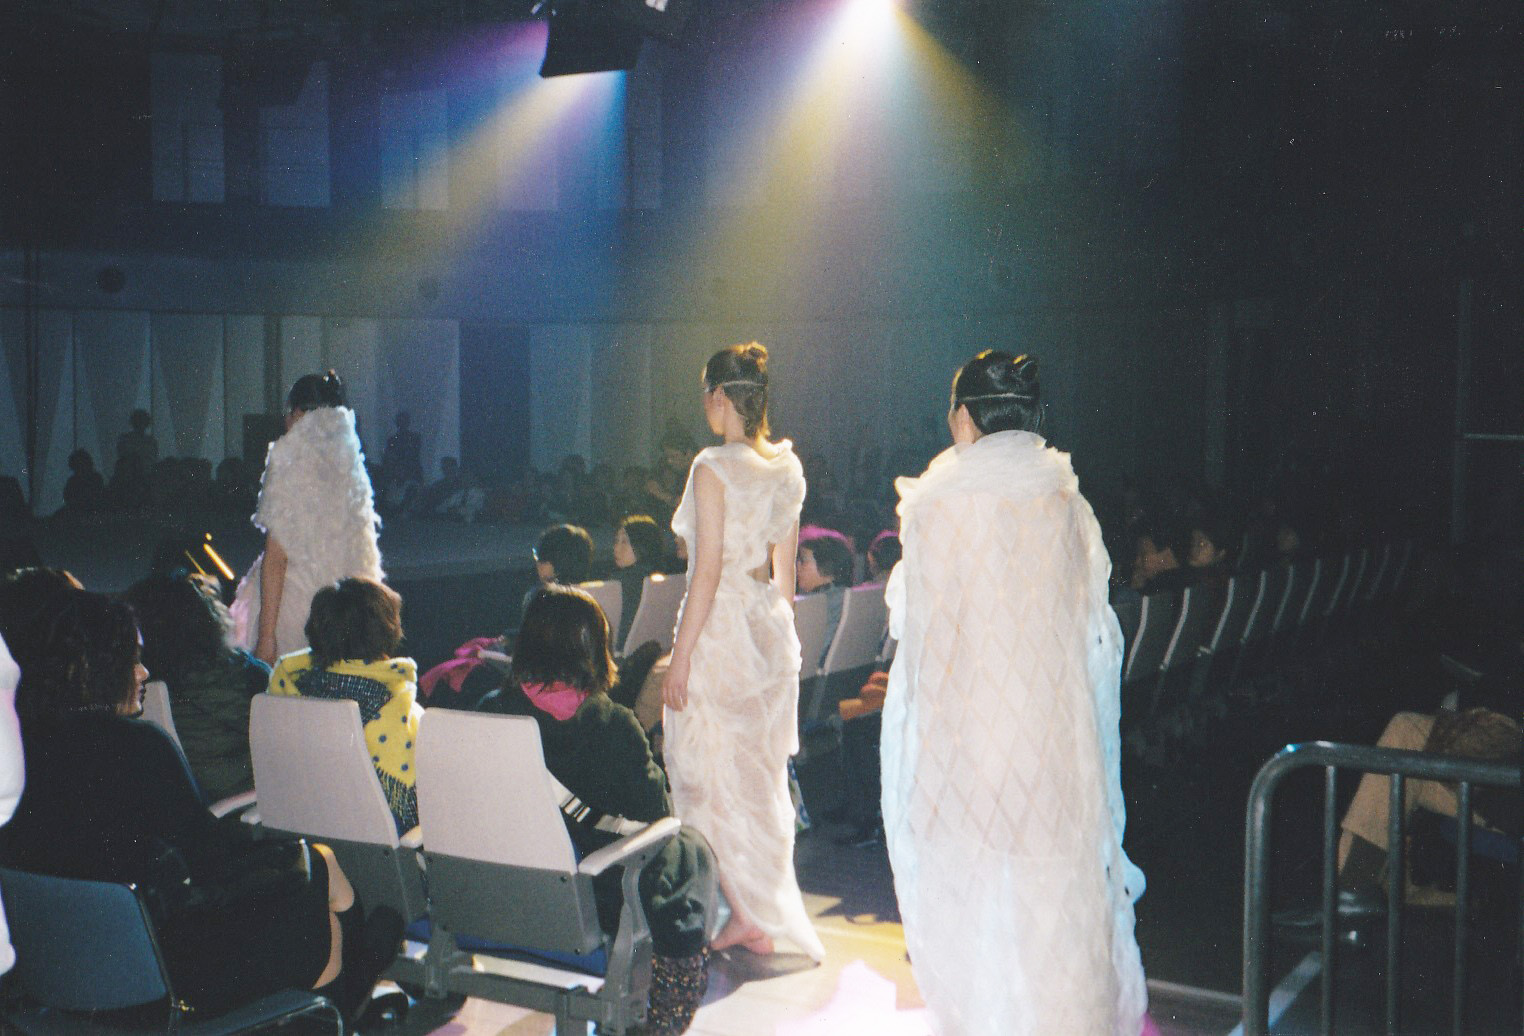 Fashionshow in Kobe